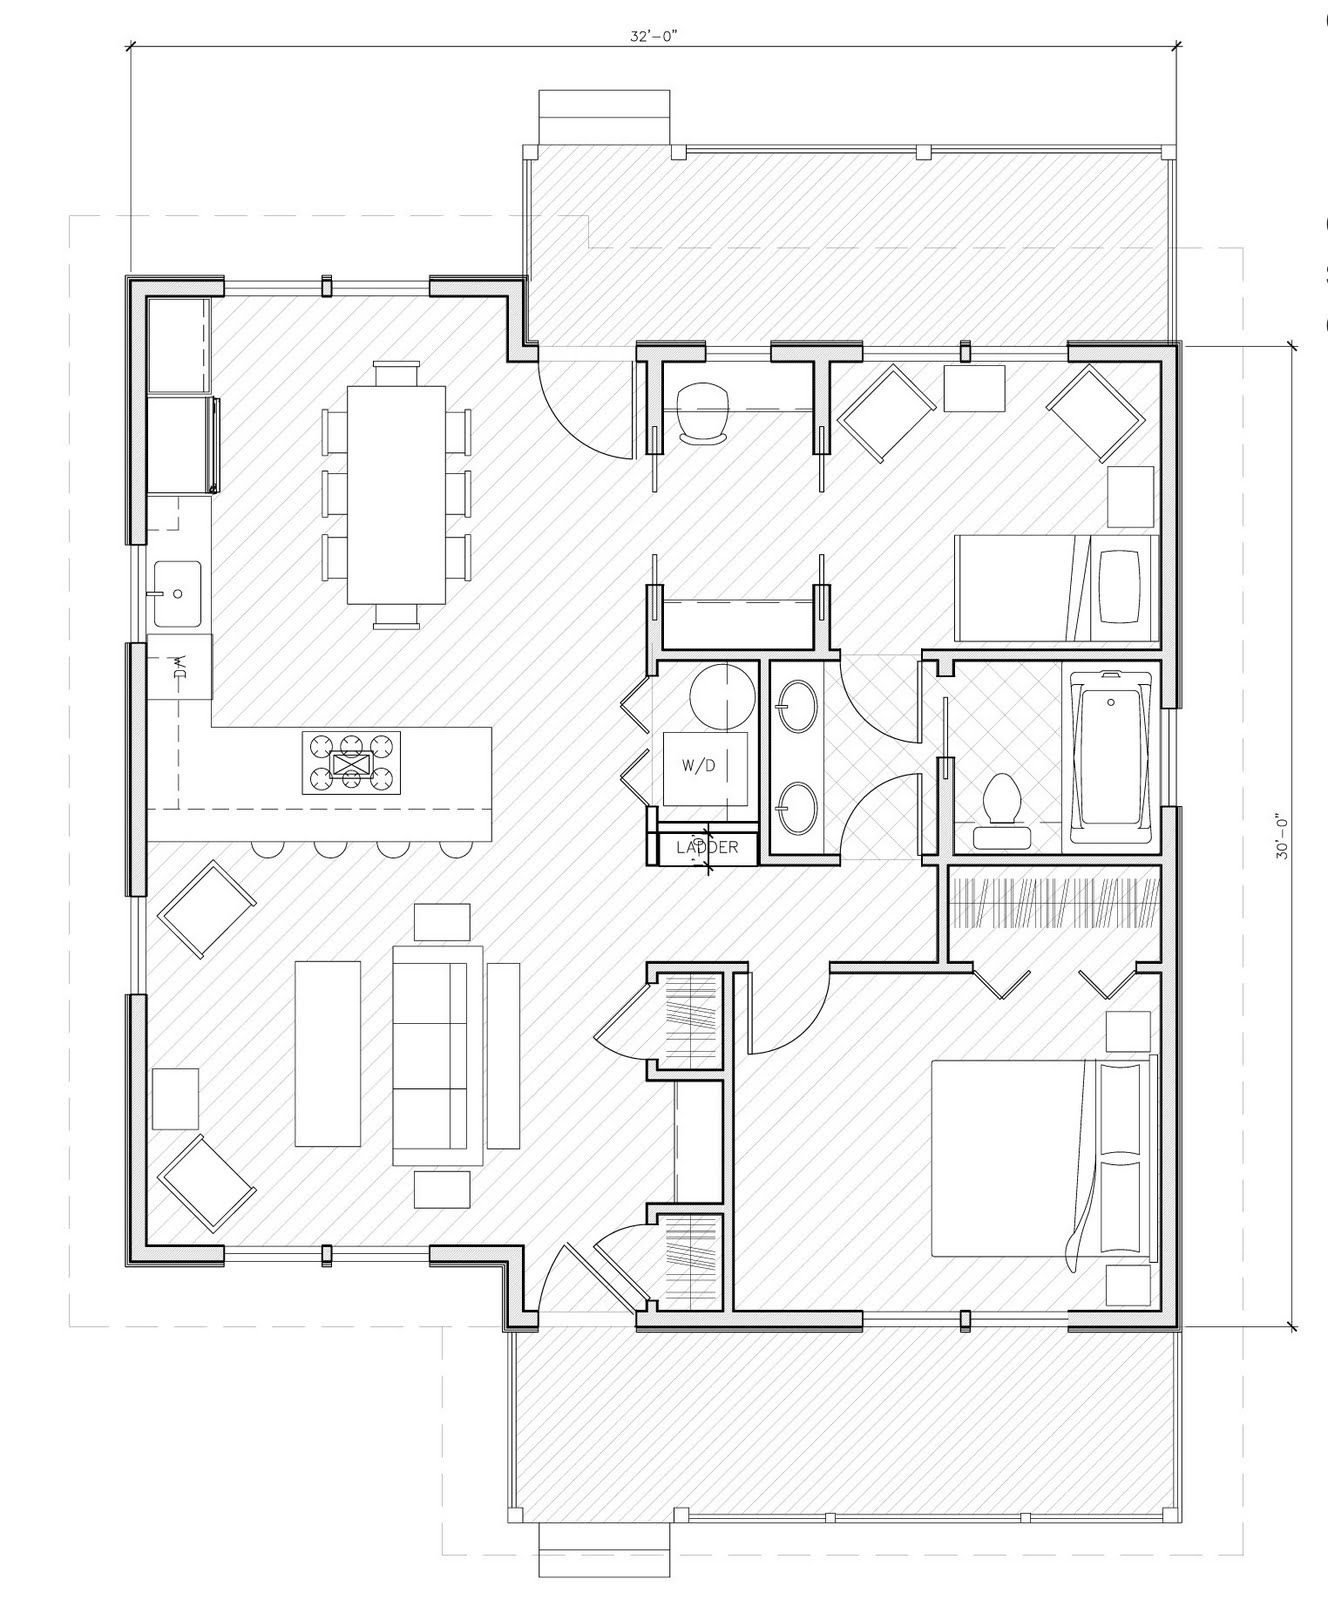 Small house plans under 1000 sq ft homes pinterest for House plans below 1000 sq ft kerala